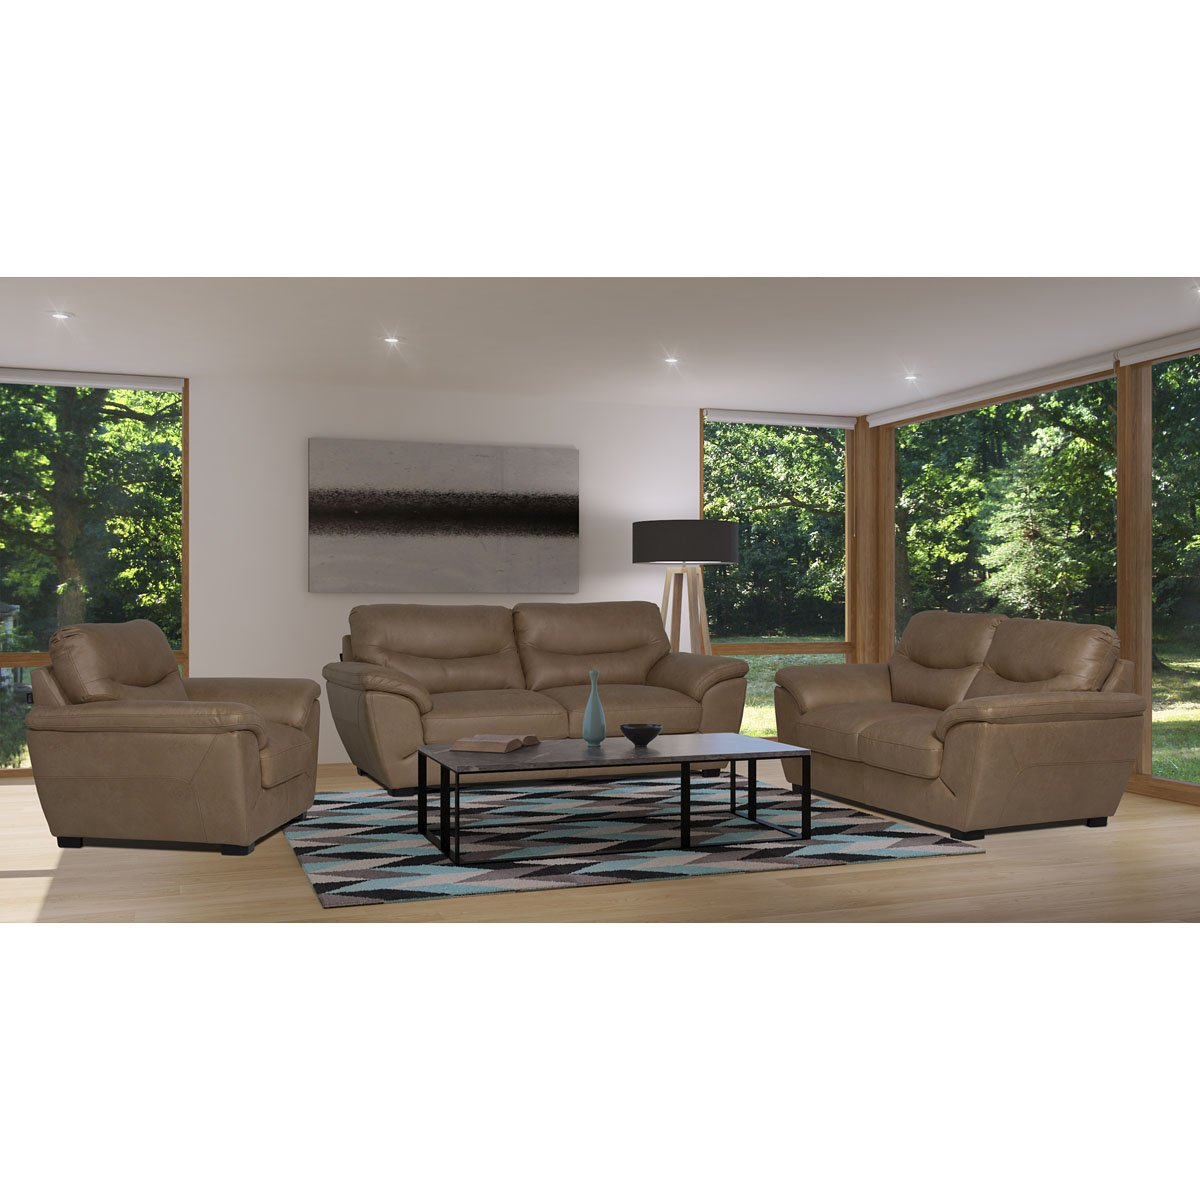 Sala ryan muebles boal texas beige sears com mx me for Muebles beige